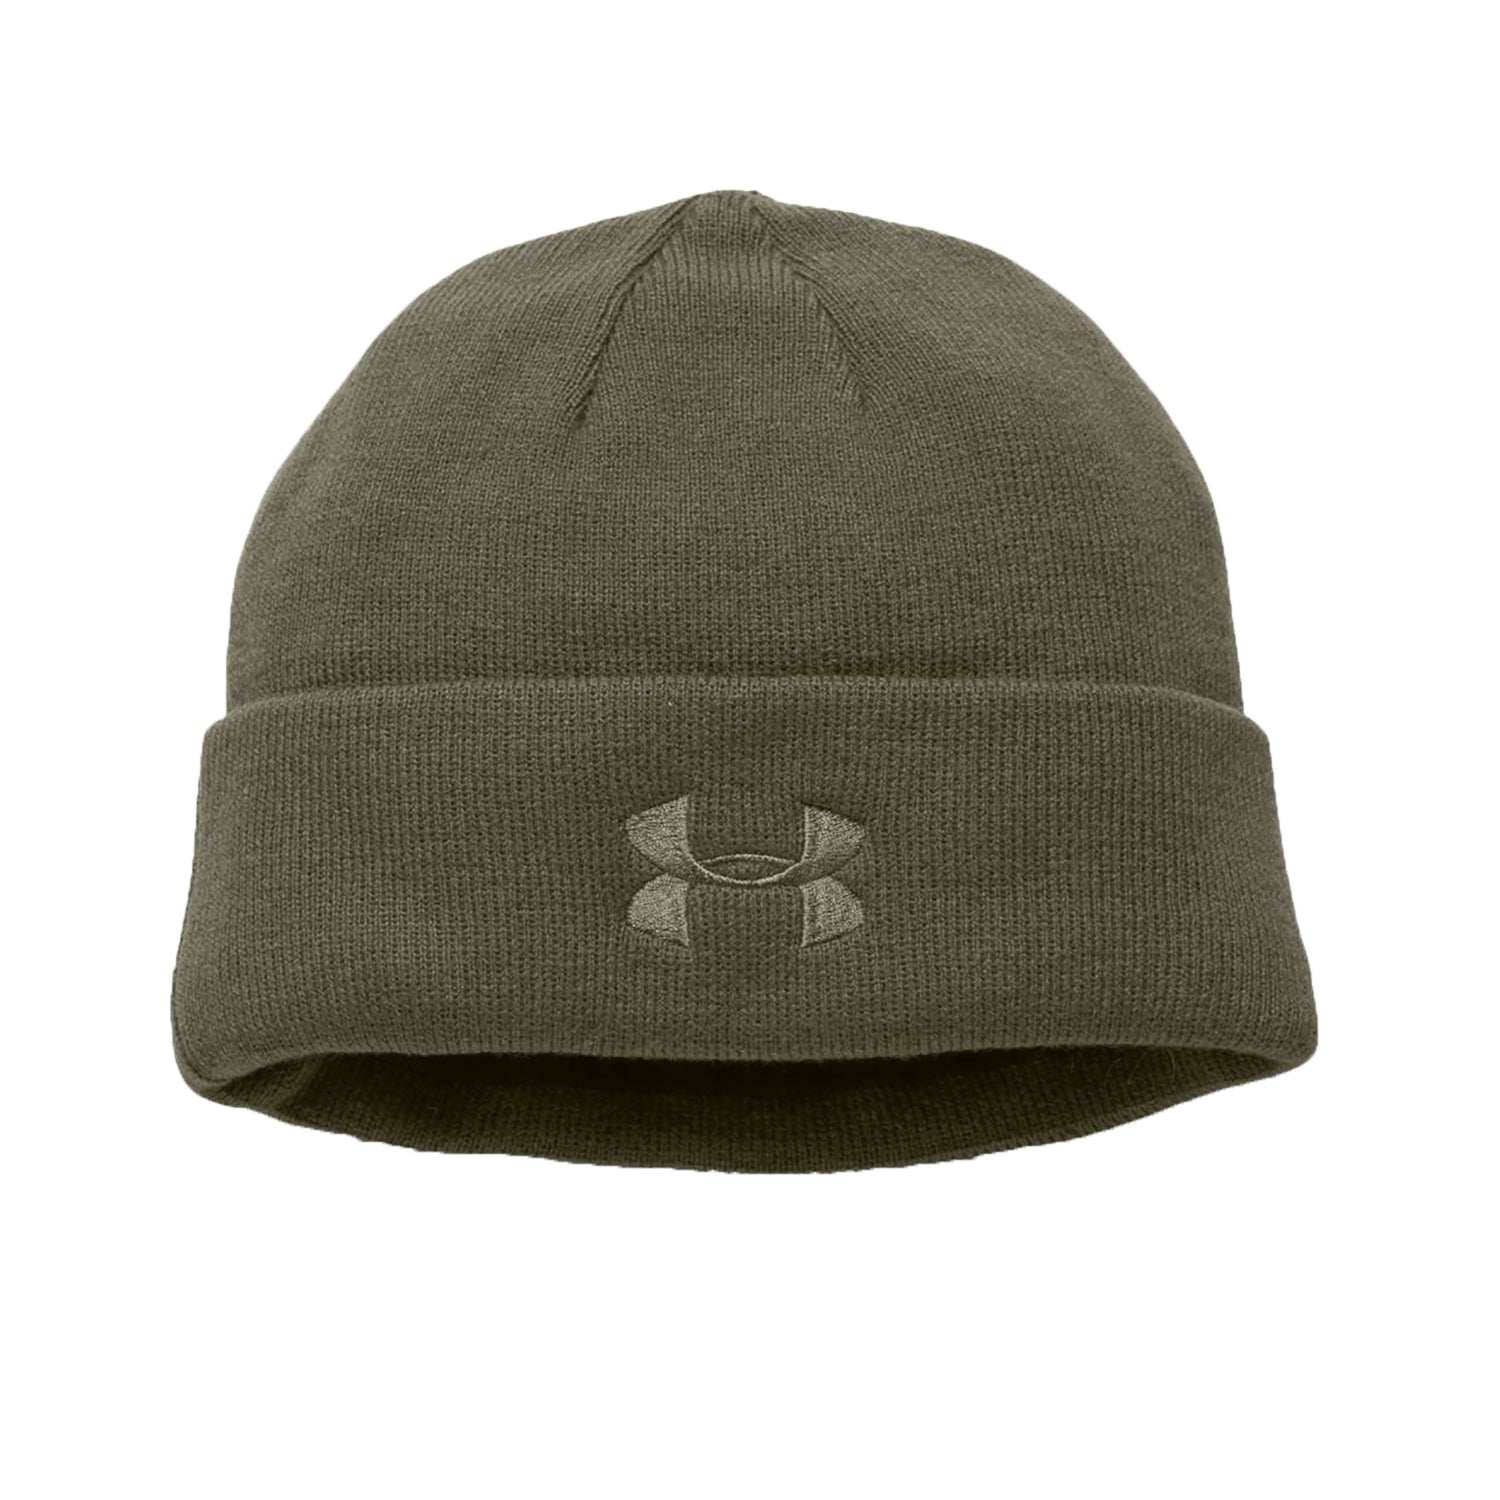 Under Armour Tactical Fleece Beanie - HYDRA Tactical 7f4d24ff3b4